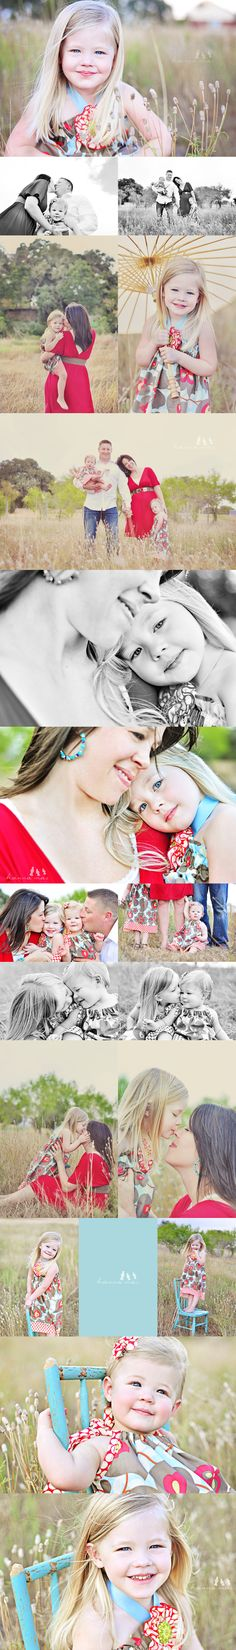 Adorable family session, cute little girls!